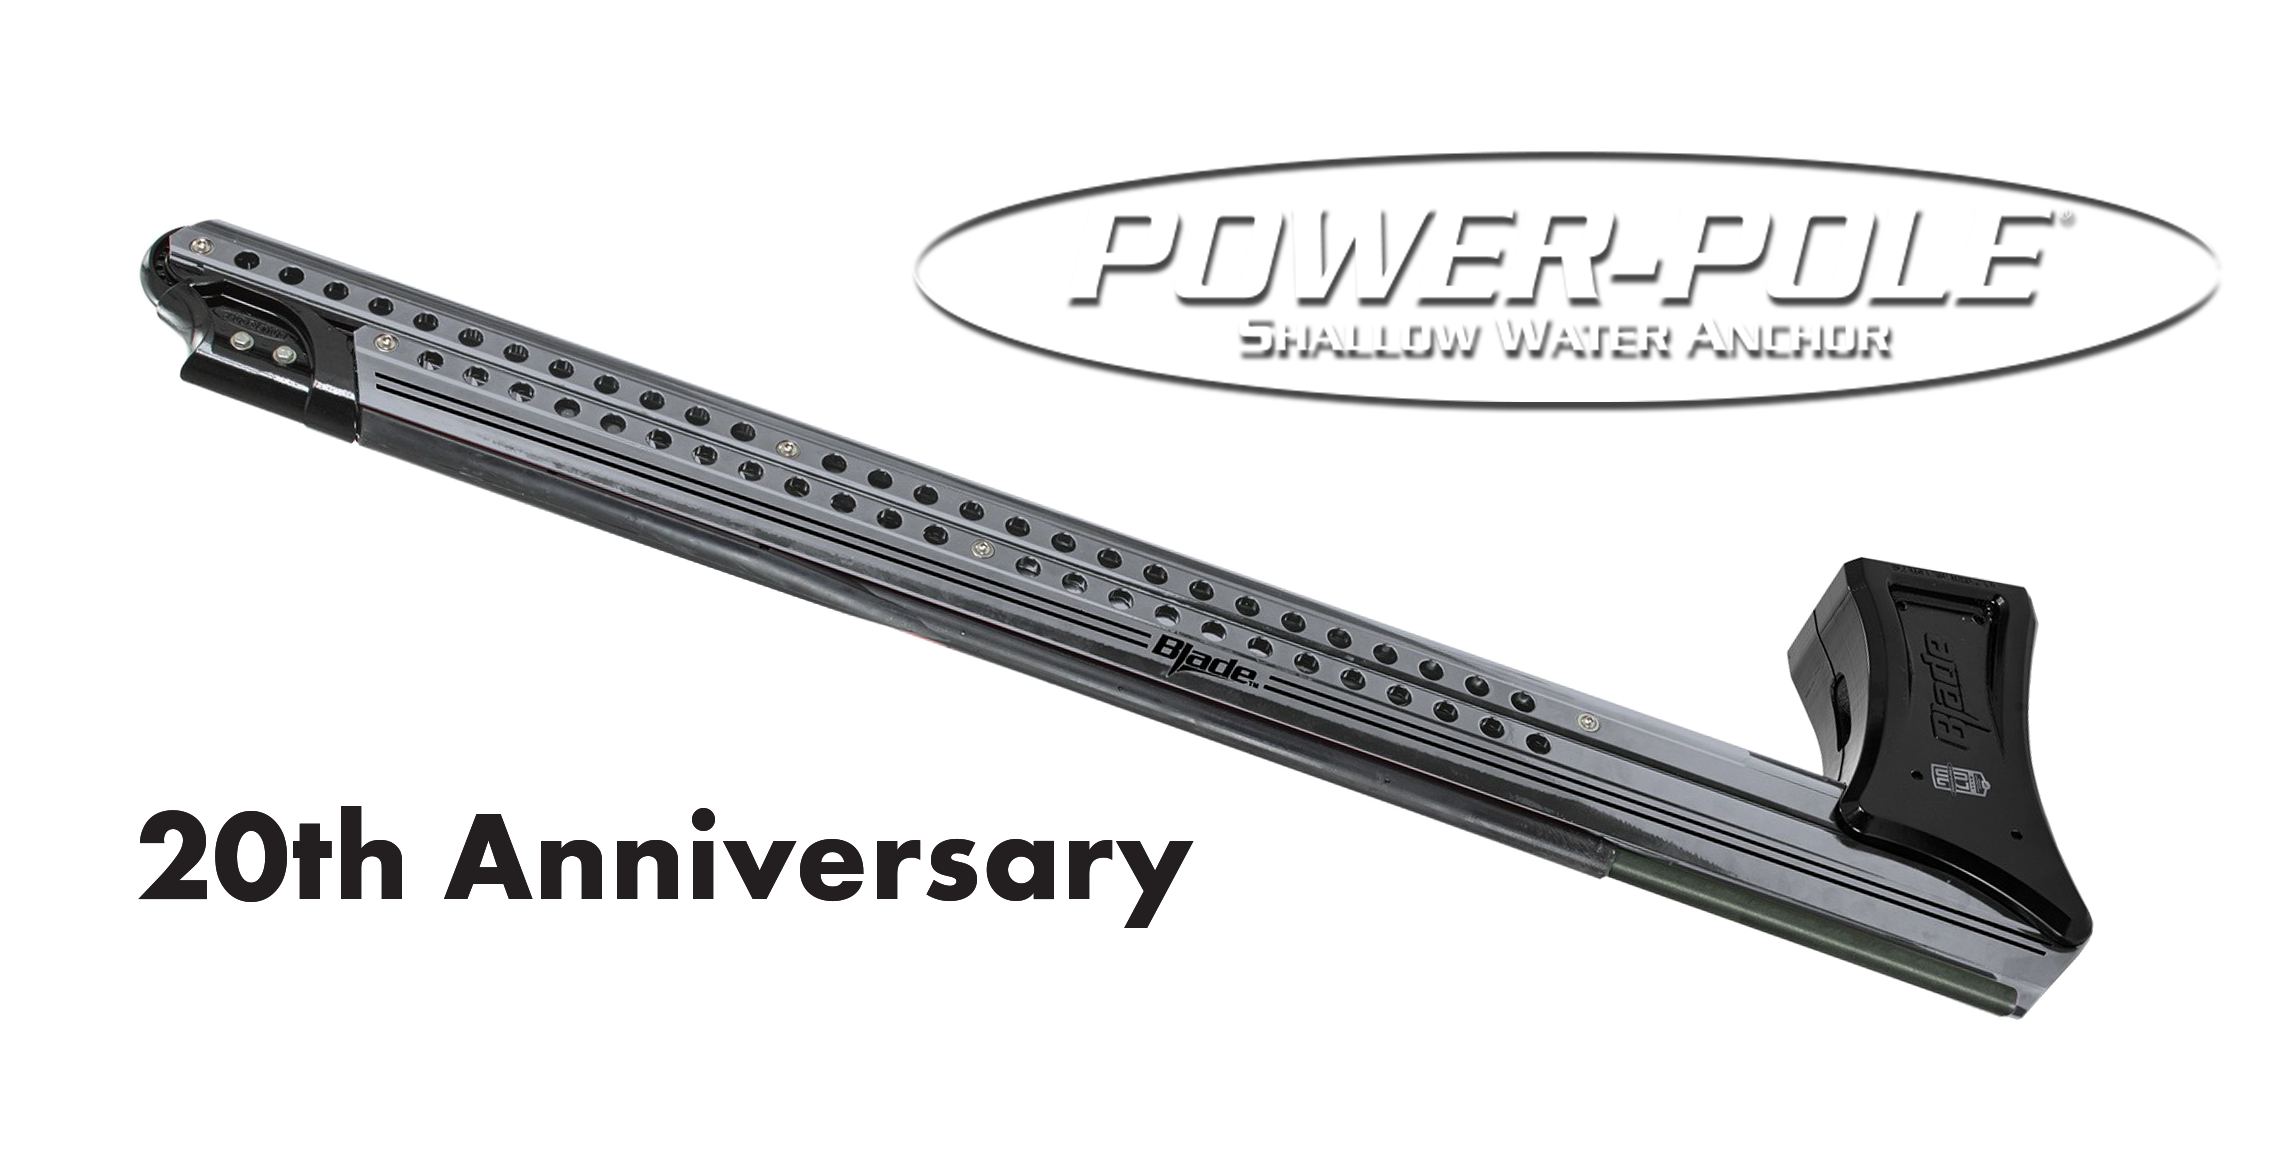 Power-Poles is Celeting 20 Years with Limited Edition ... on mobile home 200 amp wire, mobile home intertherm furnace wiring diagram, mobile home electric pole, mobile home power pole,